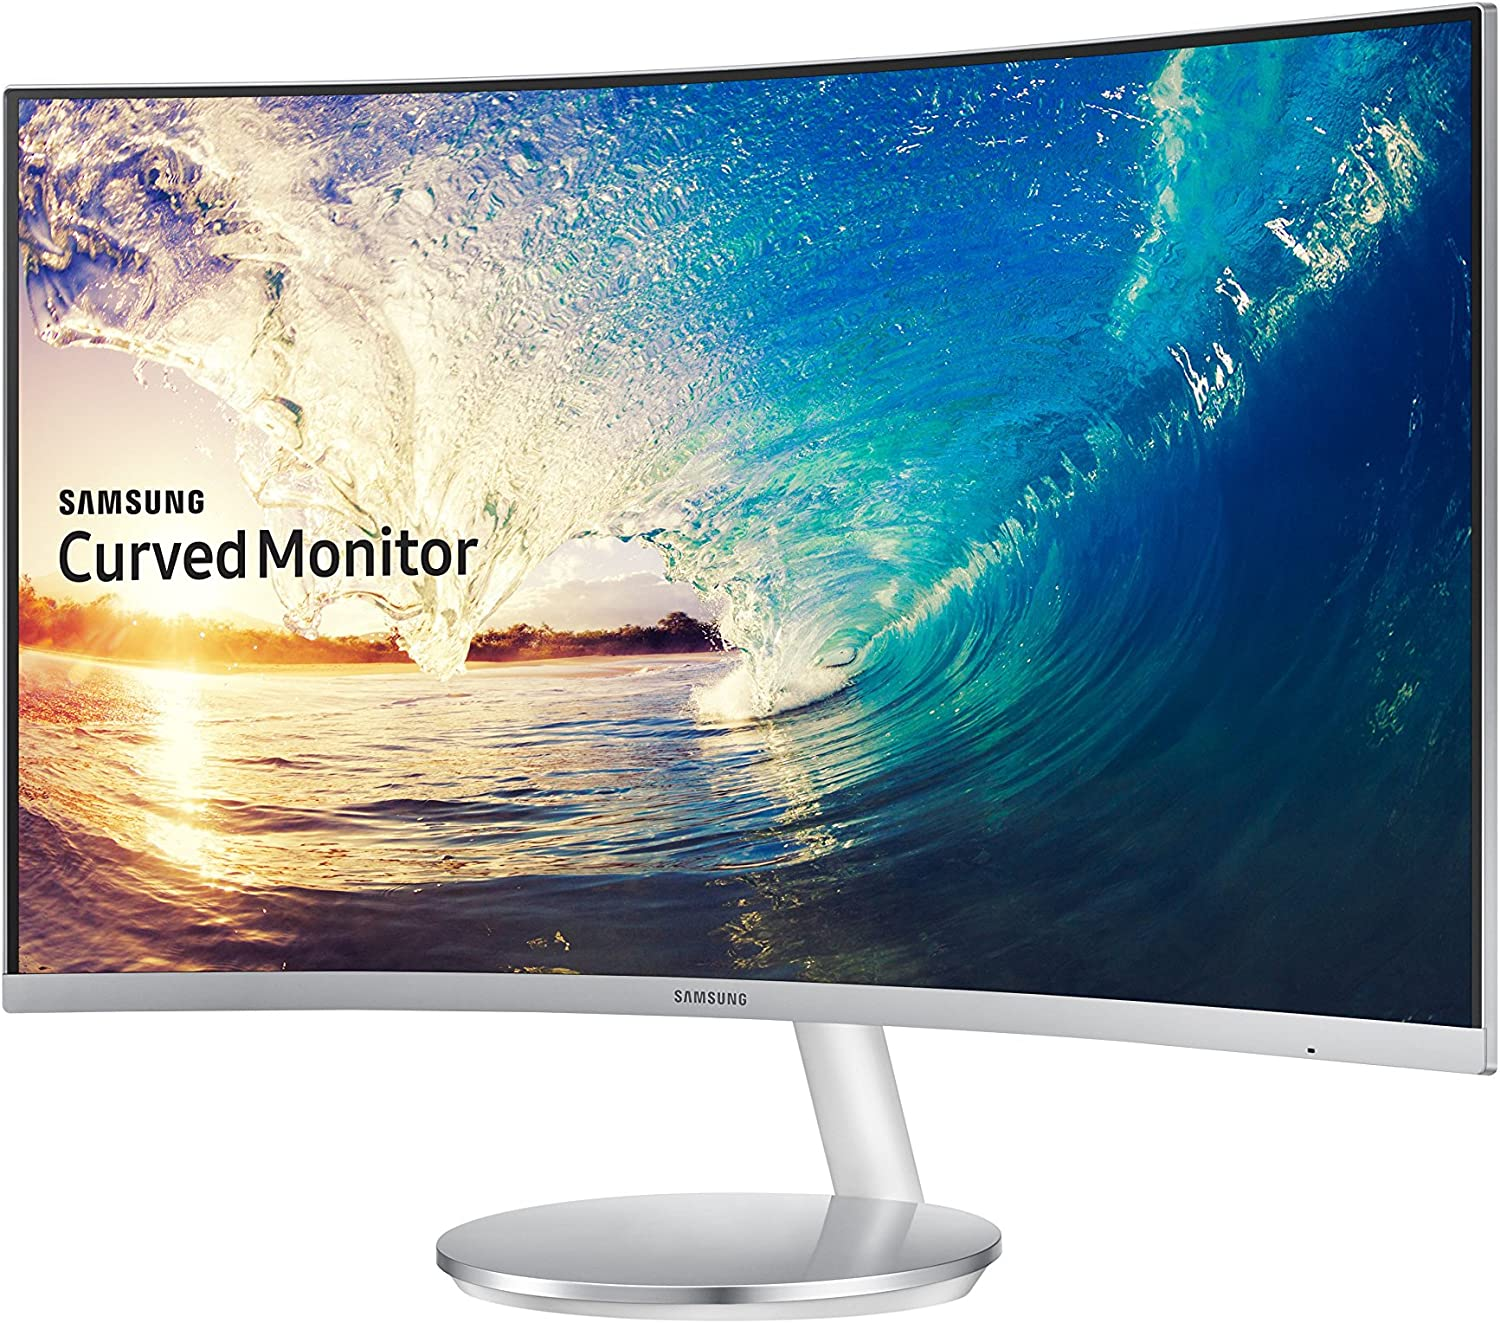 Samsung IT LC27F591FDNXZA - best curved monitor with speakers